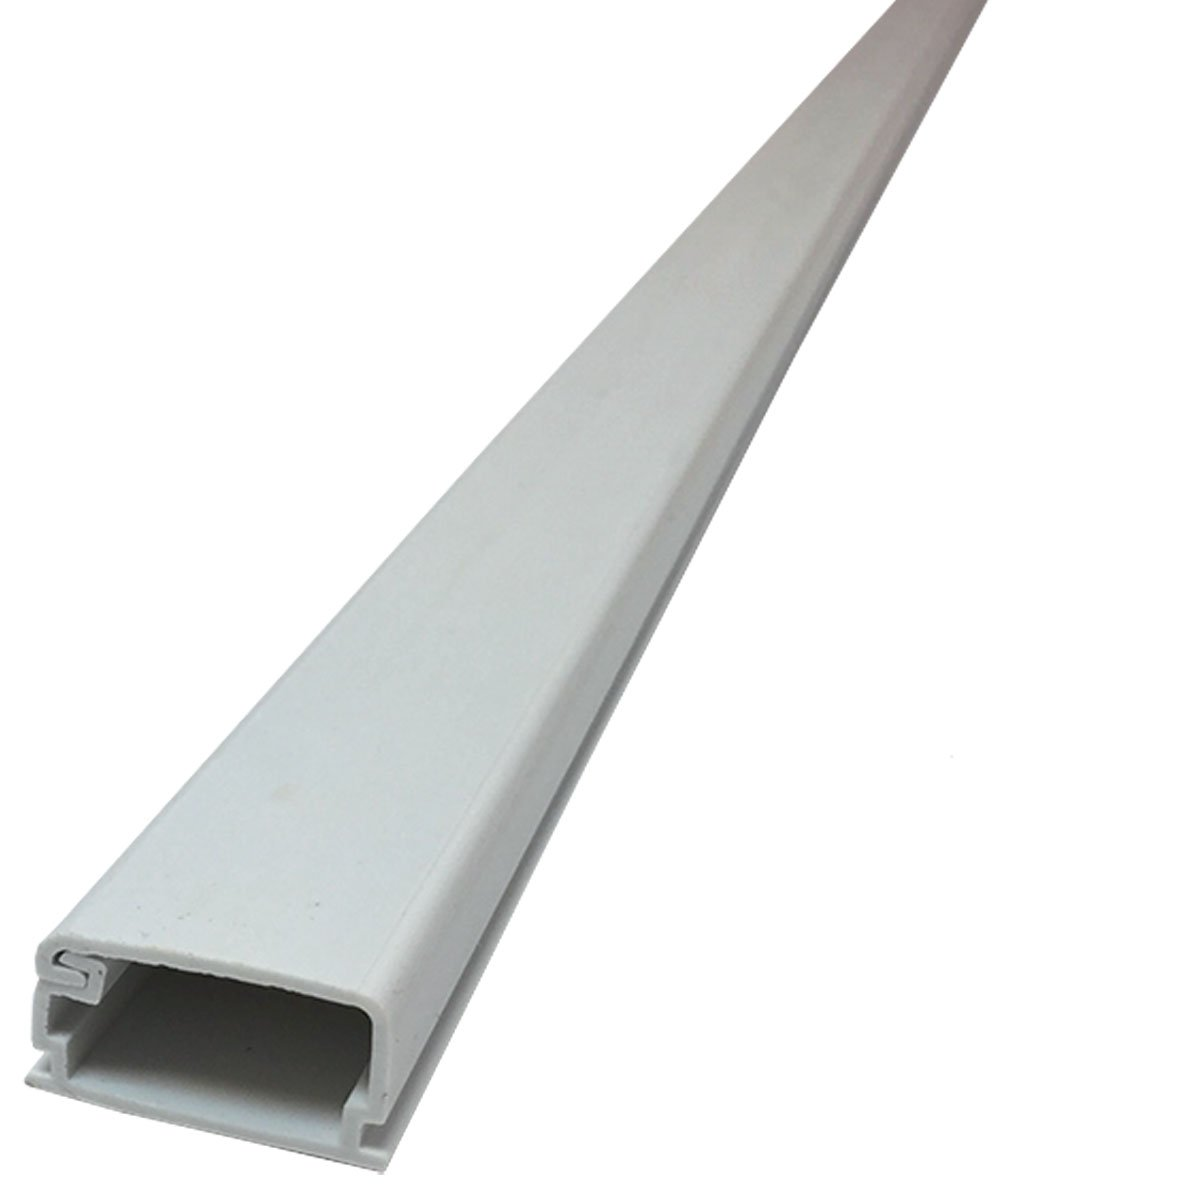 Medium Latching Surface Cable Raceways - (20 x 6FT Sticks = 120FT) - Color: White